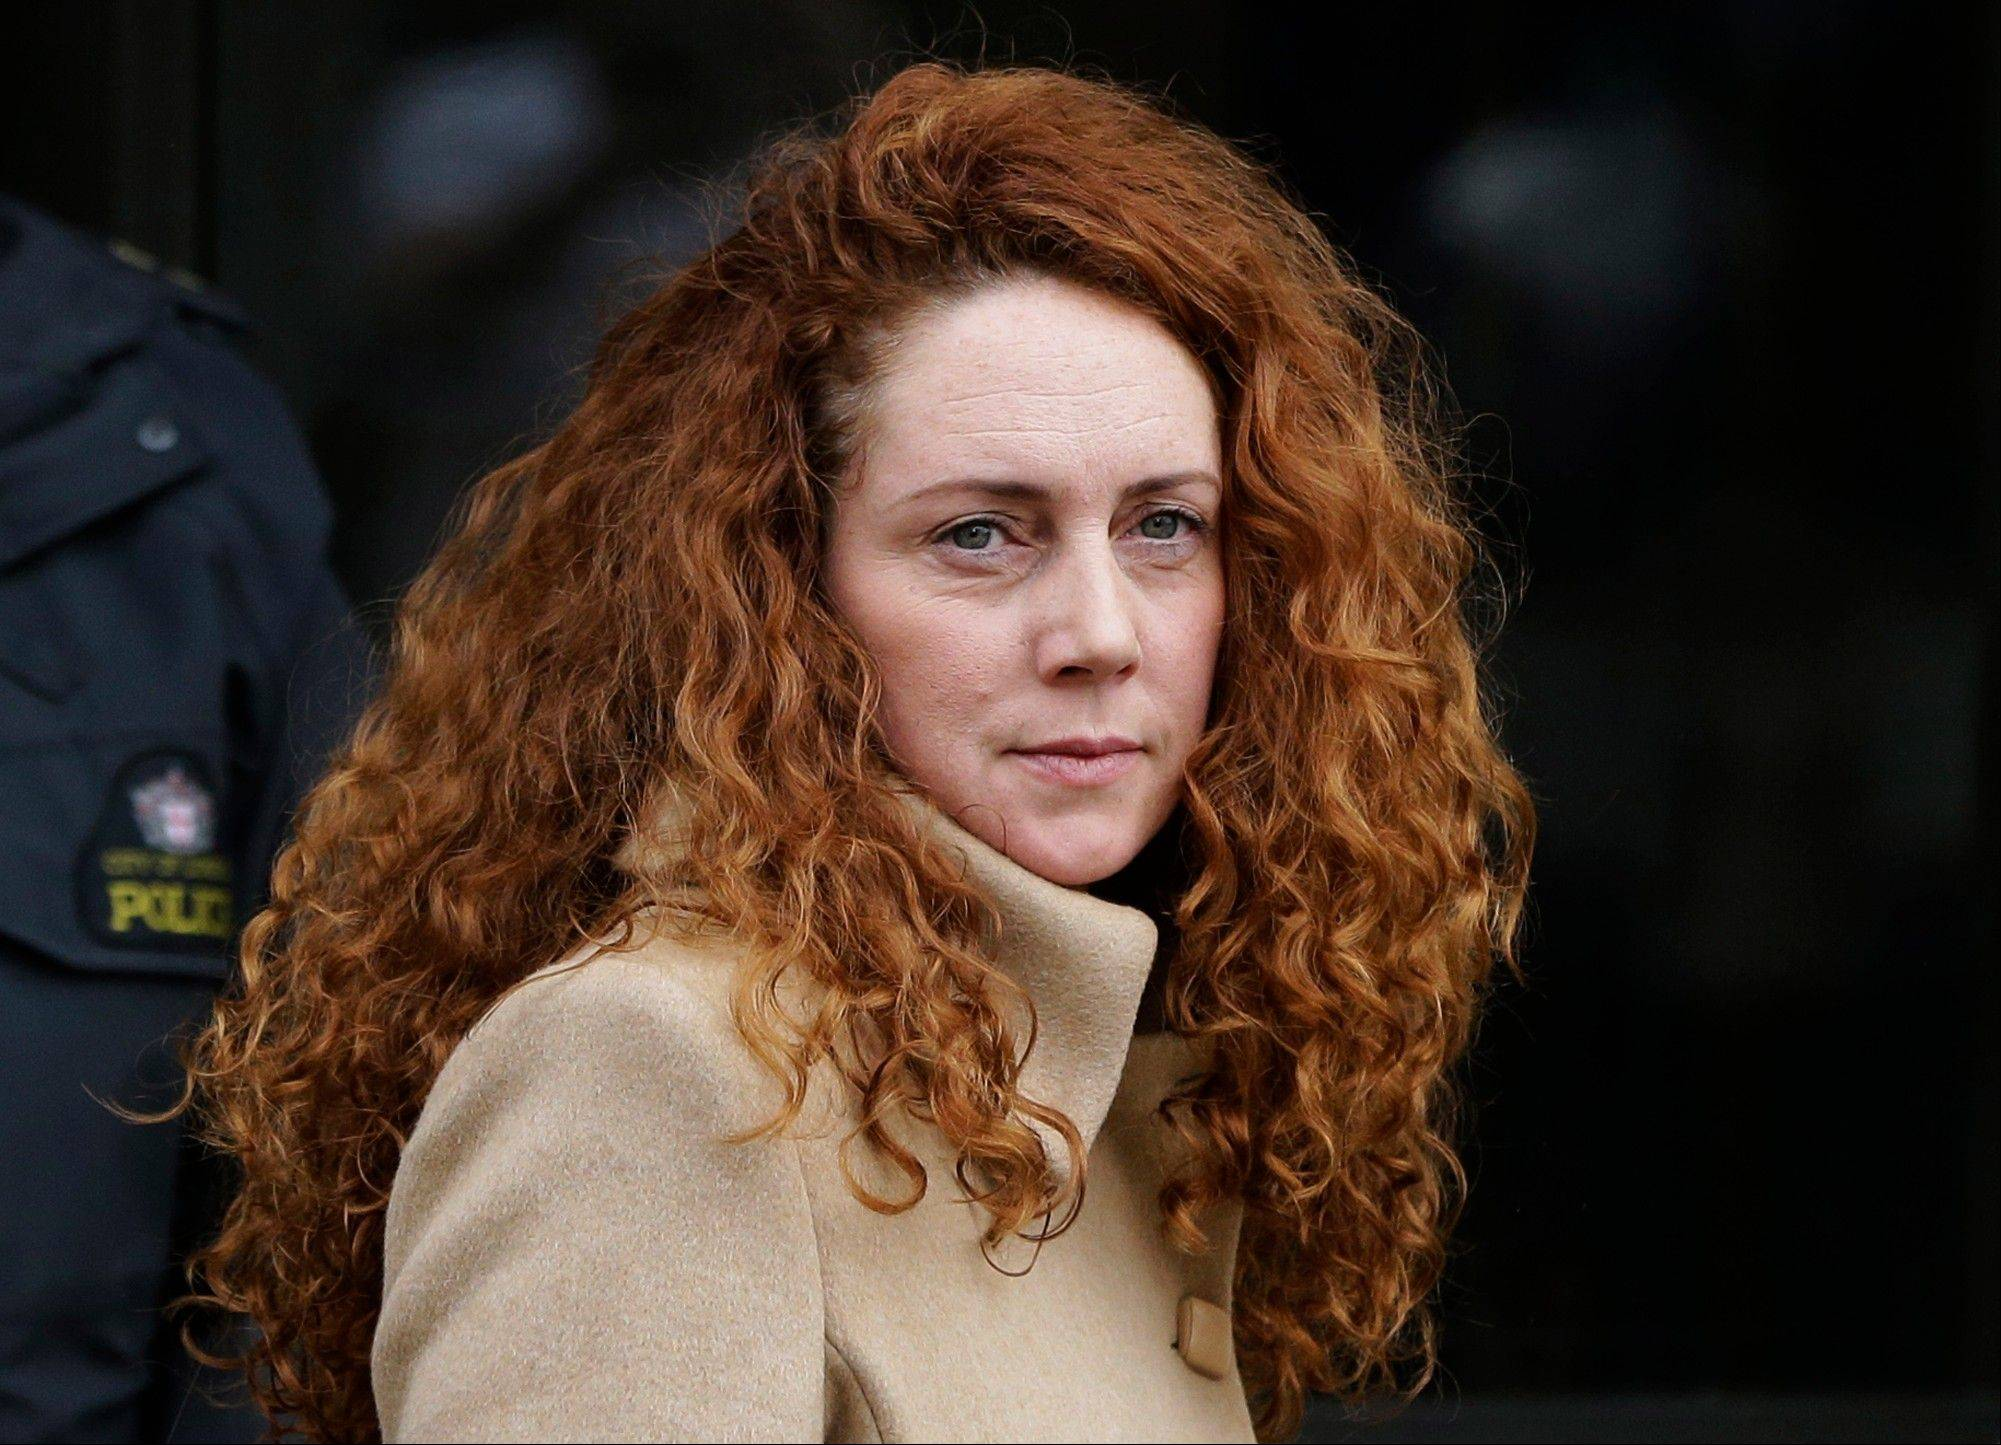 Rebekah Brooks, former chief of News Corp.'s British operations, leaves the Old Bailey court in London. Two former confidants of Britain's prime minister, former tabloid editors Andy Coulson and Brooks, were charged Nov. 20 with conspiring to pay public officials in exchange for stories and information.